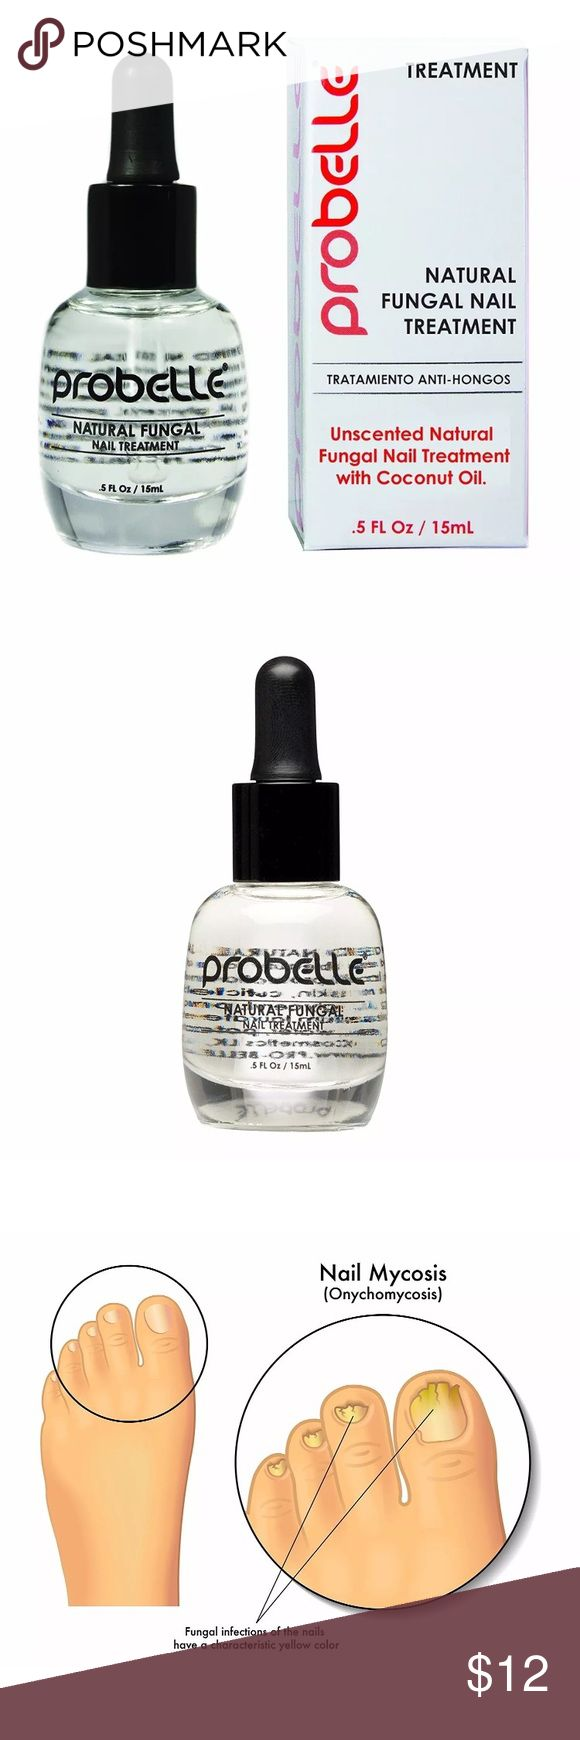 100% Natural Fungal Nail Treatment, Anti Fungal 100% Natural Fungal Nail Treatment, Anti Fungal Nail Treatment, Nail Color Restoration, Clear, .5 oz/ 15 ml (Patented Formula)  ★100% Natural Nail Fungus Treatment. .50oz - 15 ml ★Restores nail color and softens nails in weeks. ★Uses FDA approved ingredients to restore toenails affected by nail fungus. Expect nail color and nail uncomfort for go away within the first 2-3 weeks. As nails continue to grow the healthy nail will grow clear and